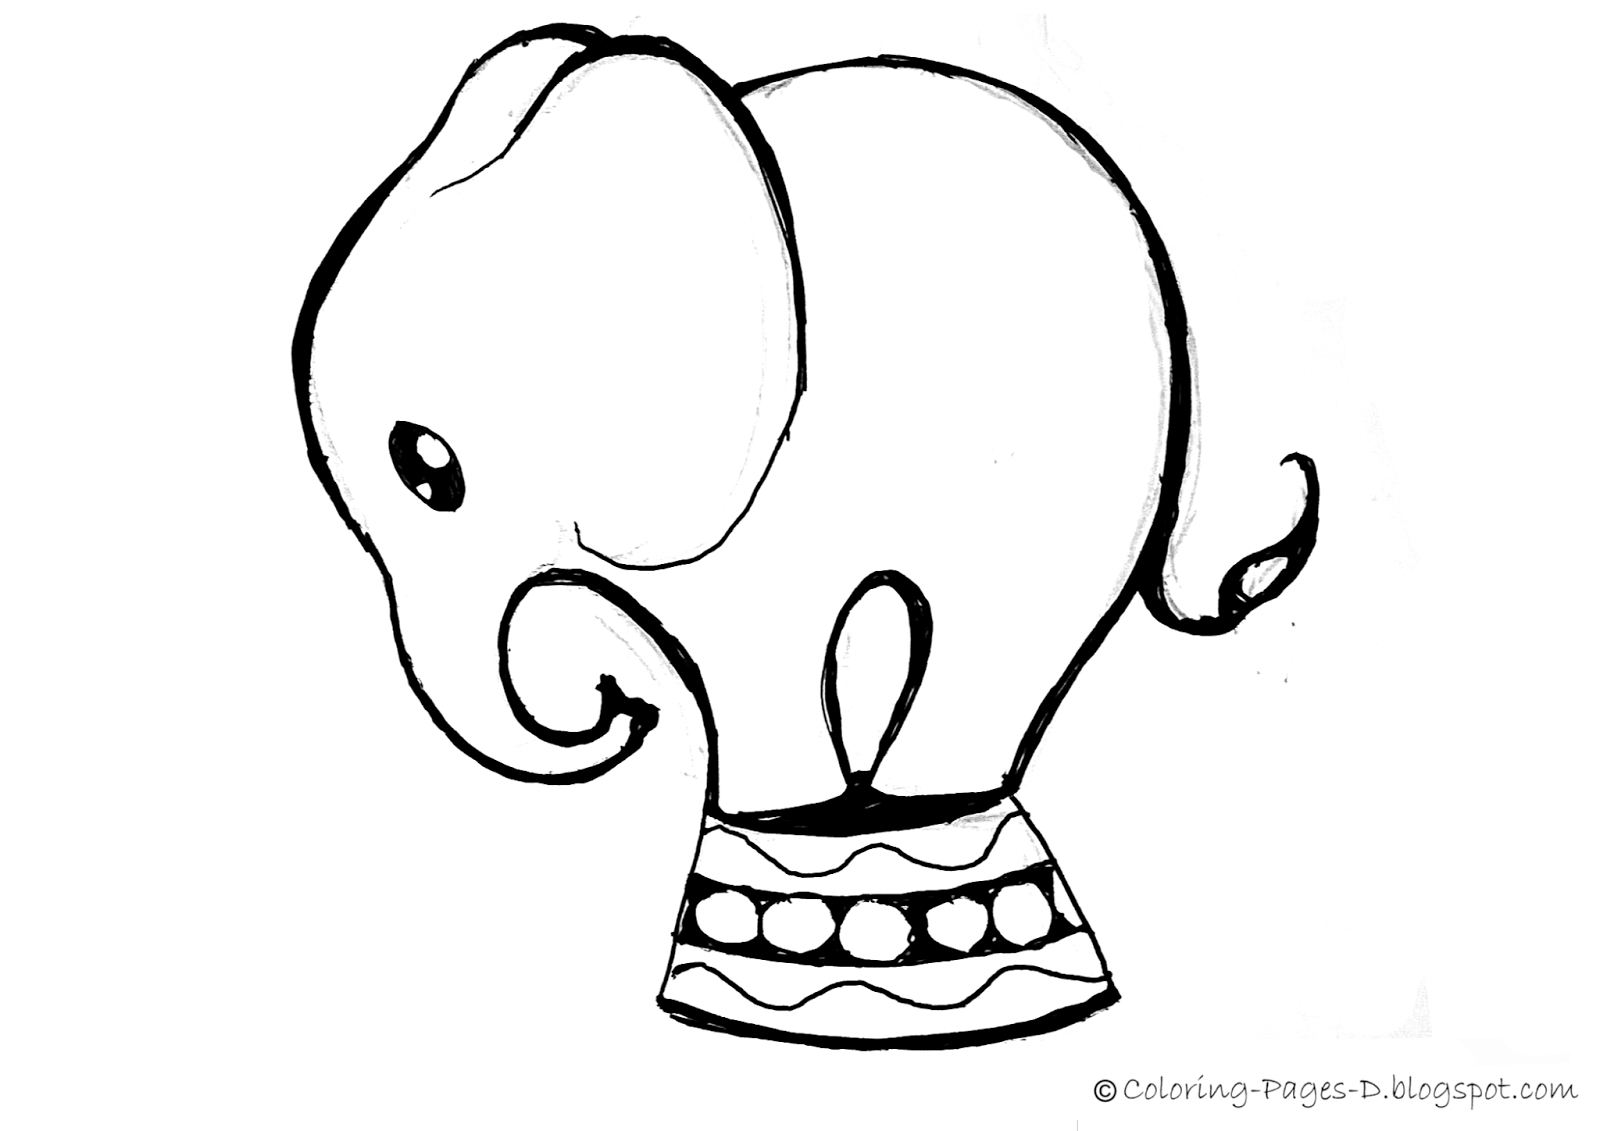 1600x1131 Cute Baby Elephant Drawing Cute Baby Elephant Drawing Baby